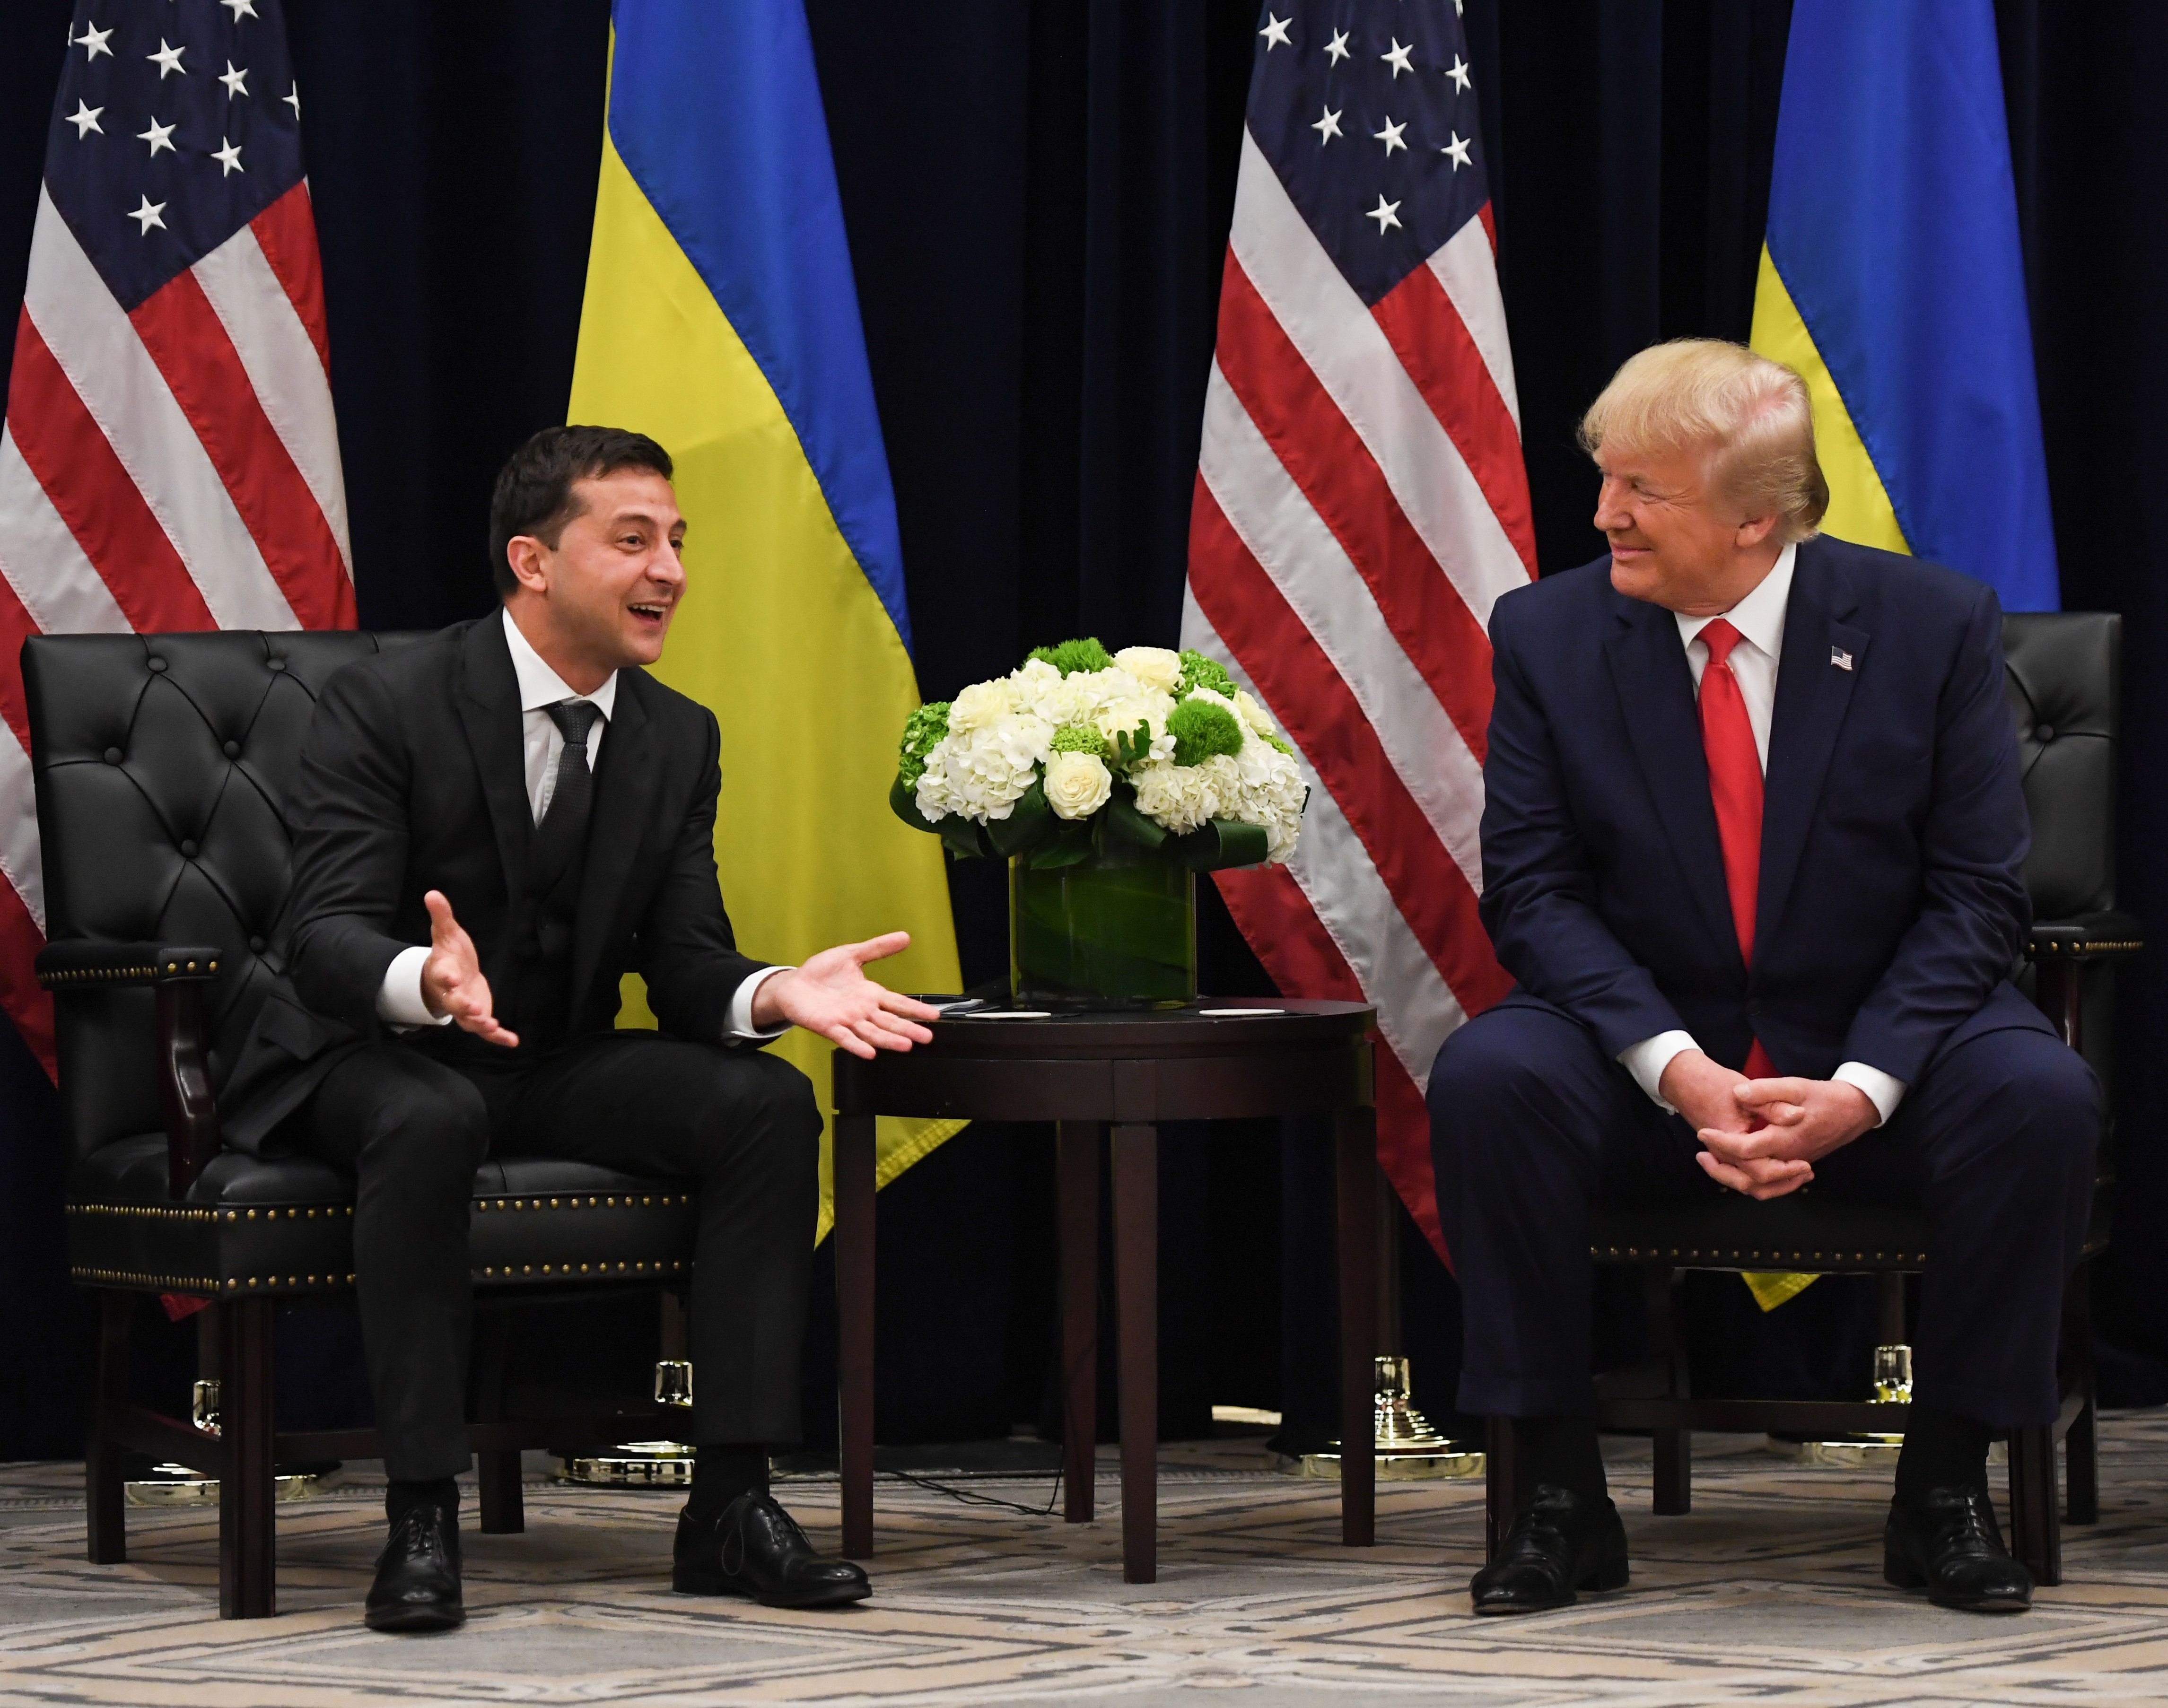 US President Donald Trump and Ukrainian President Volodymyr Zelensky speak during a meeting in New York on September 25, 2019, on the sidelines of the United Nations General Assembly. (Photo: SAUL LOEB/AFP/Getty Images)